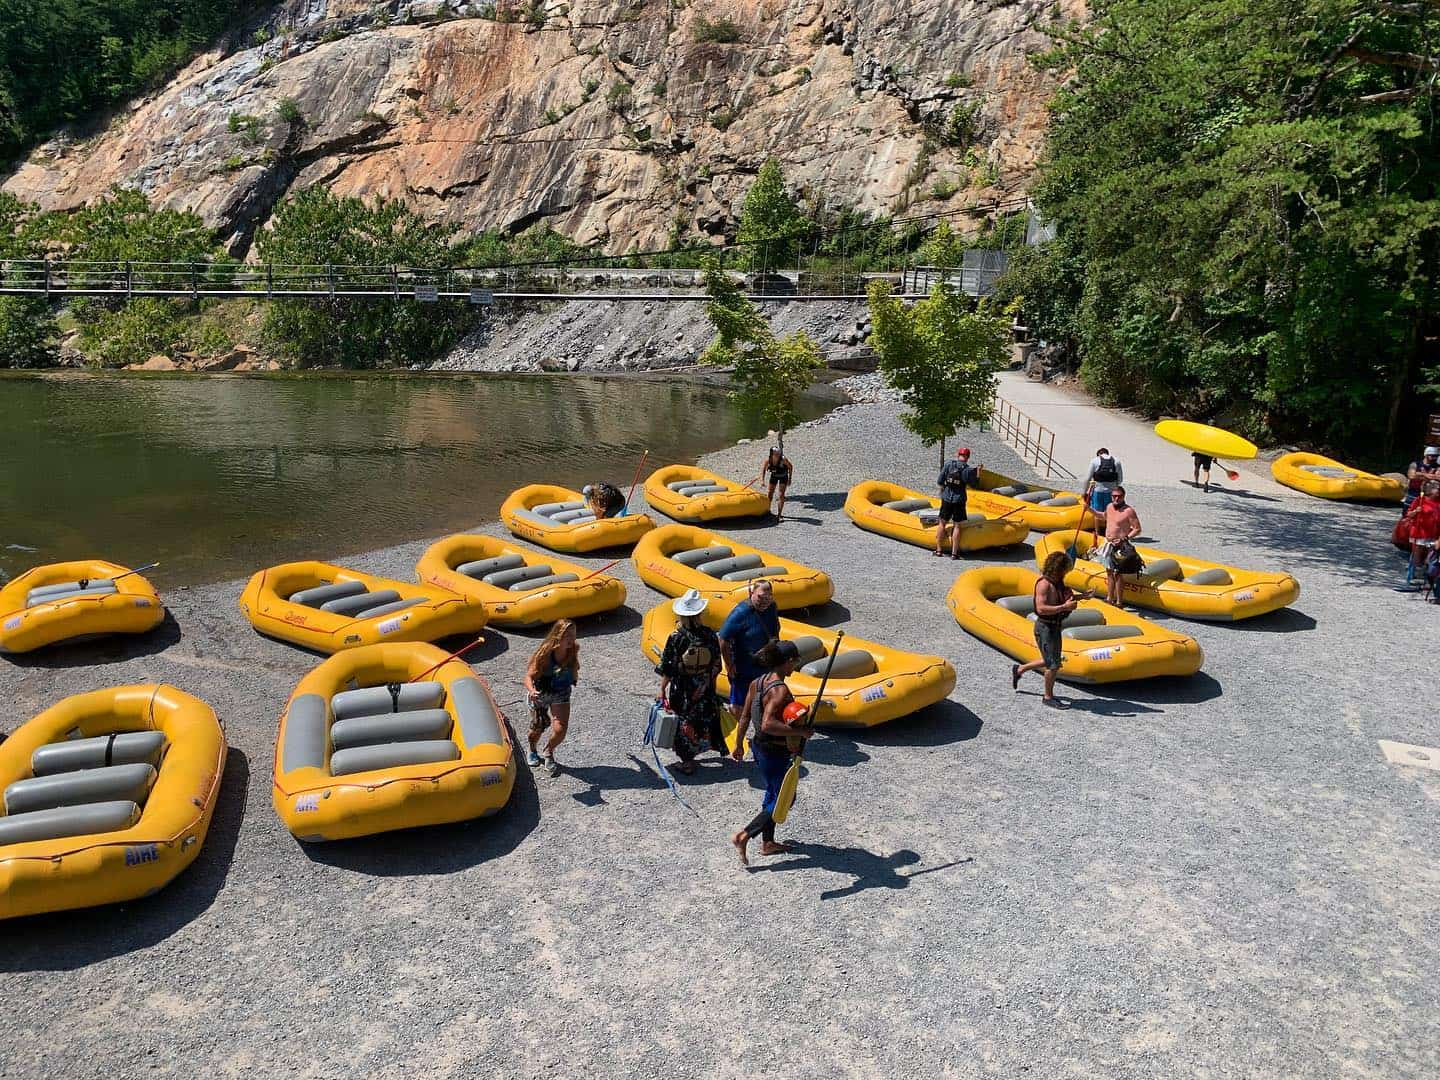 rafts on the starting point